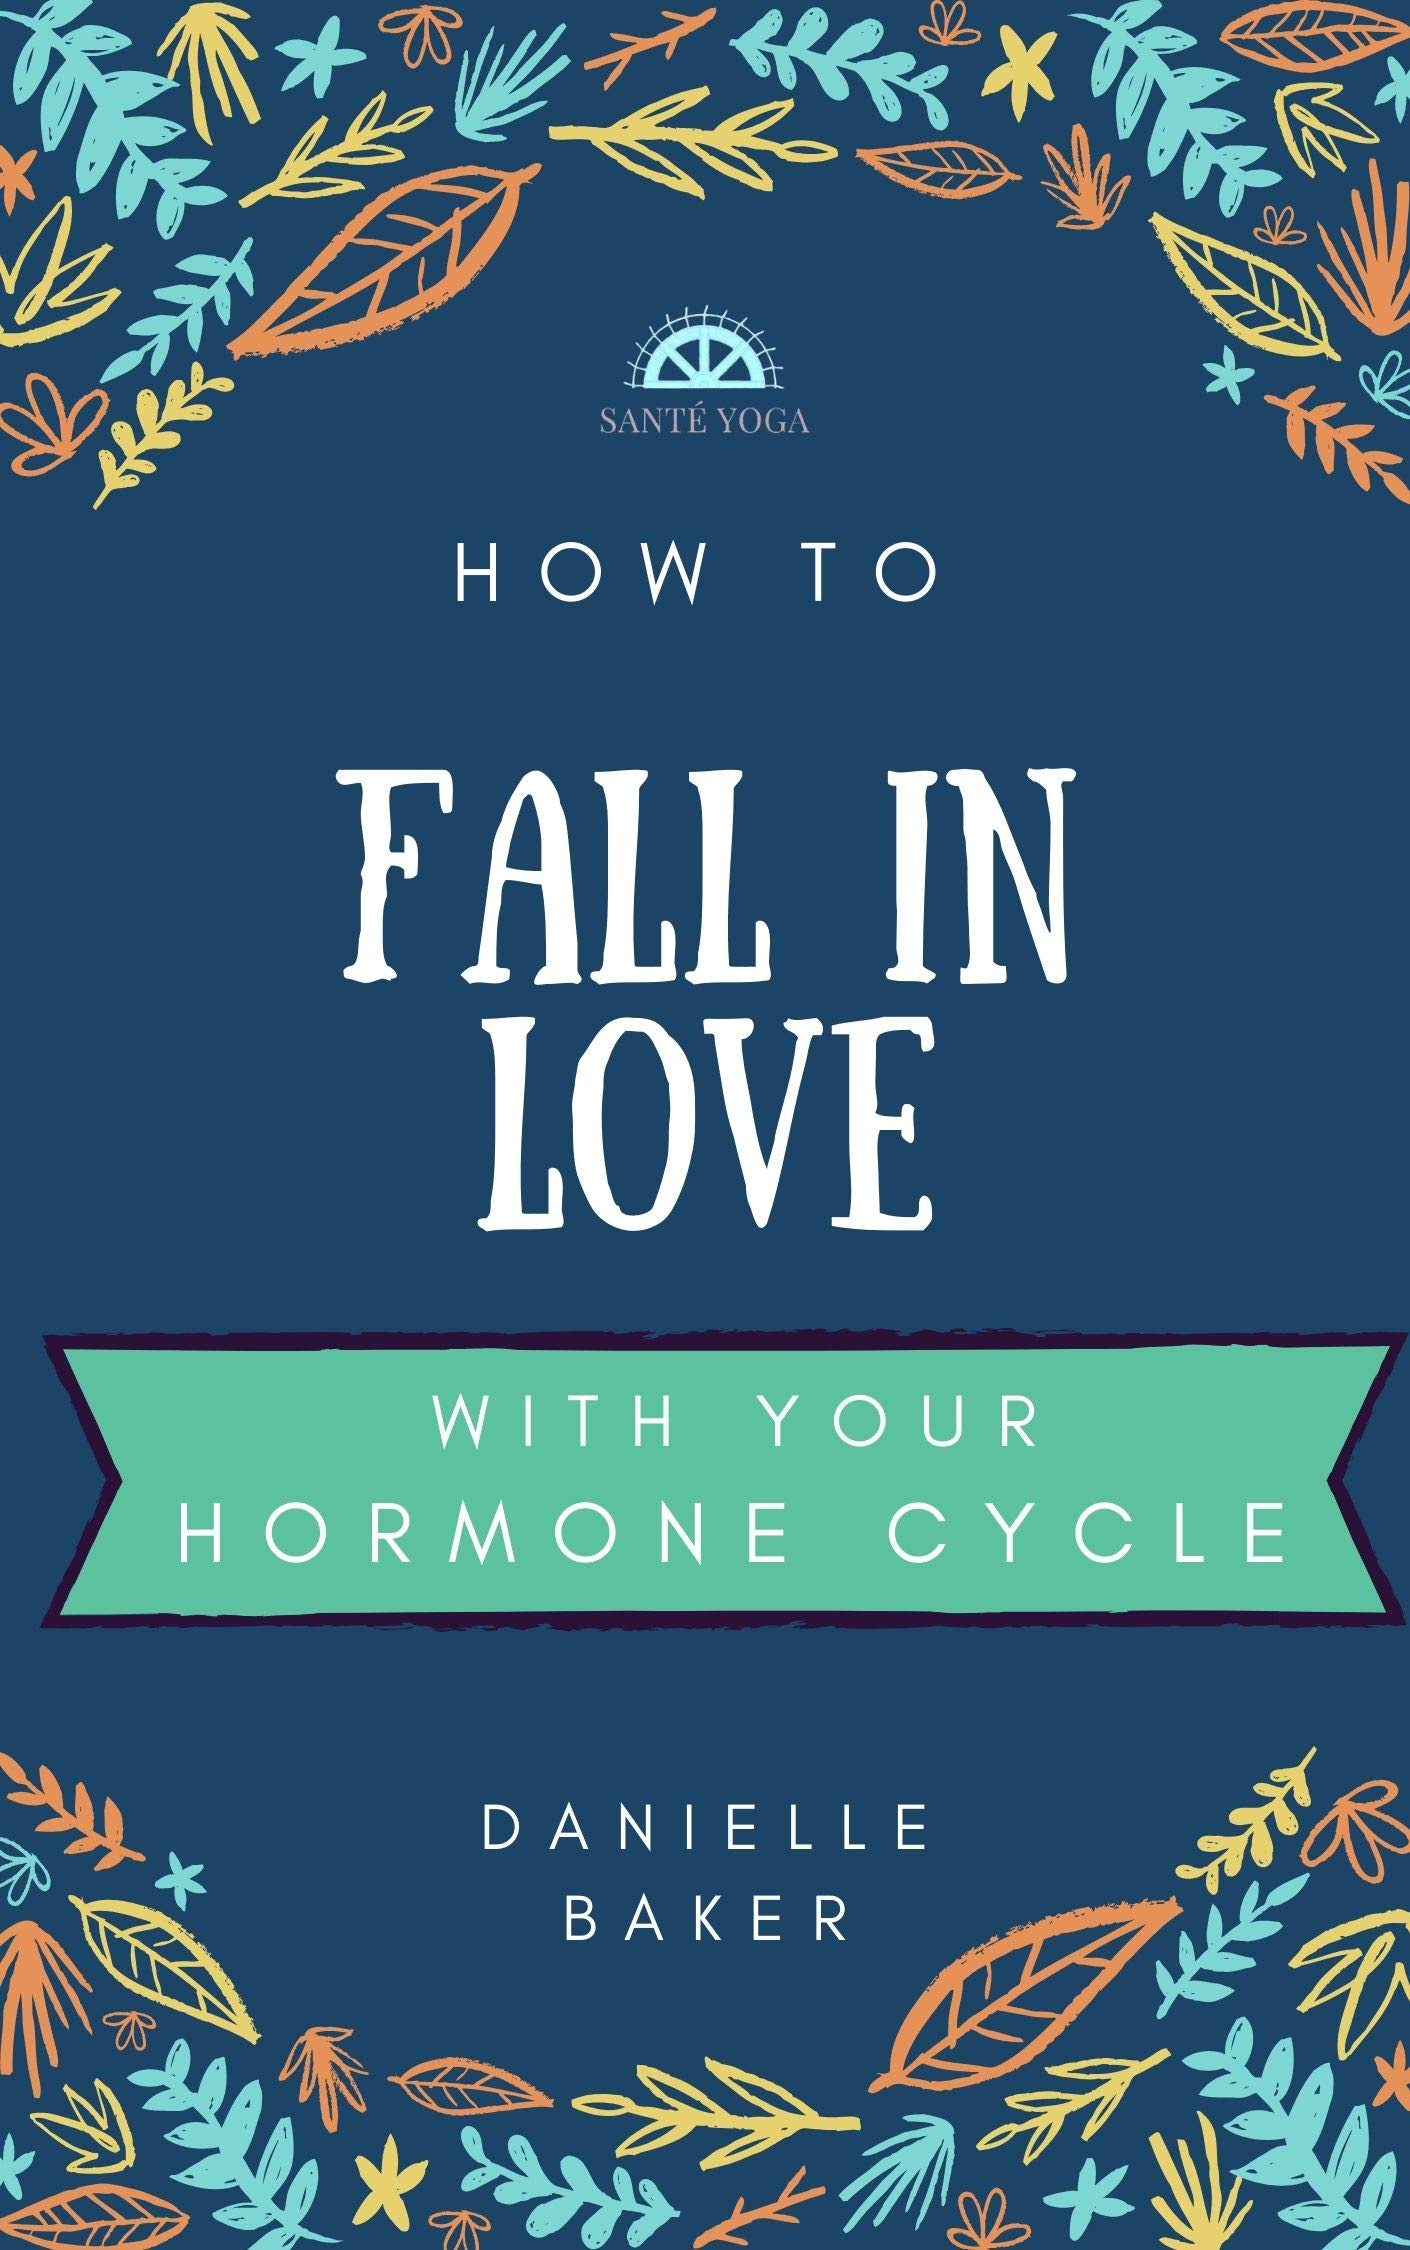 How to FALL IN LOVE with your Hormone Cycle: MENSTRUAL CYCLE & MOON PHASES: Hormones Cycle and Regulation *No Period? Follow the Moon!